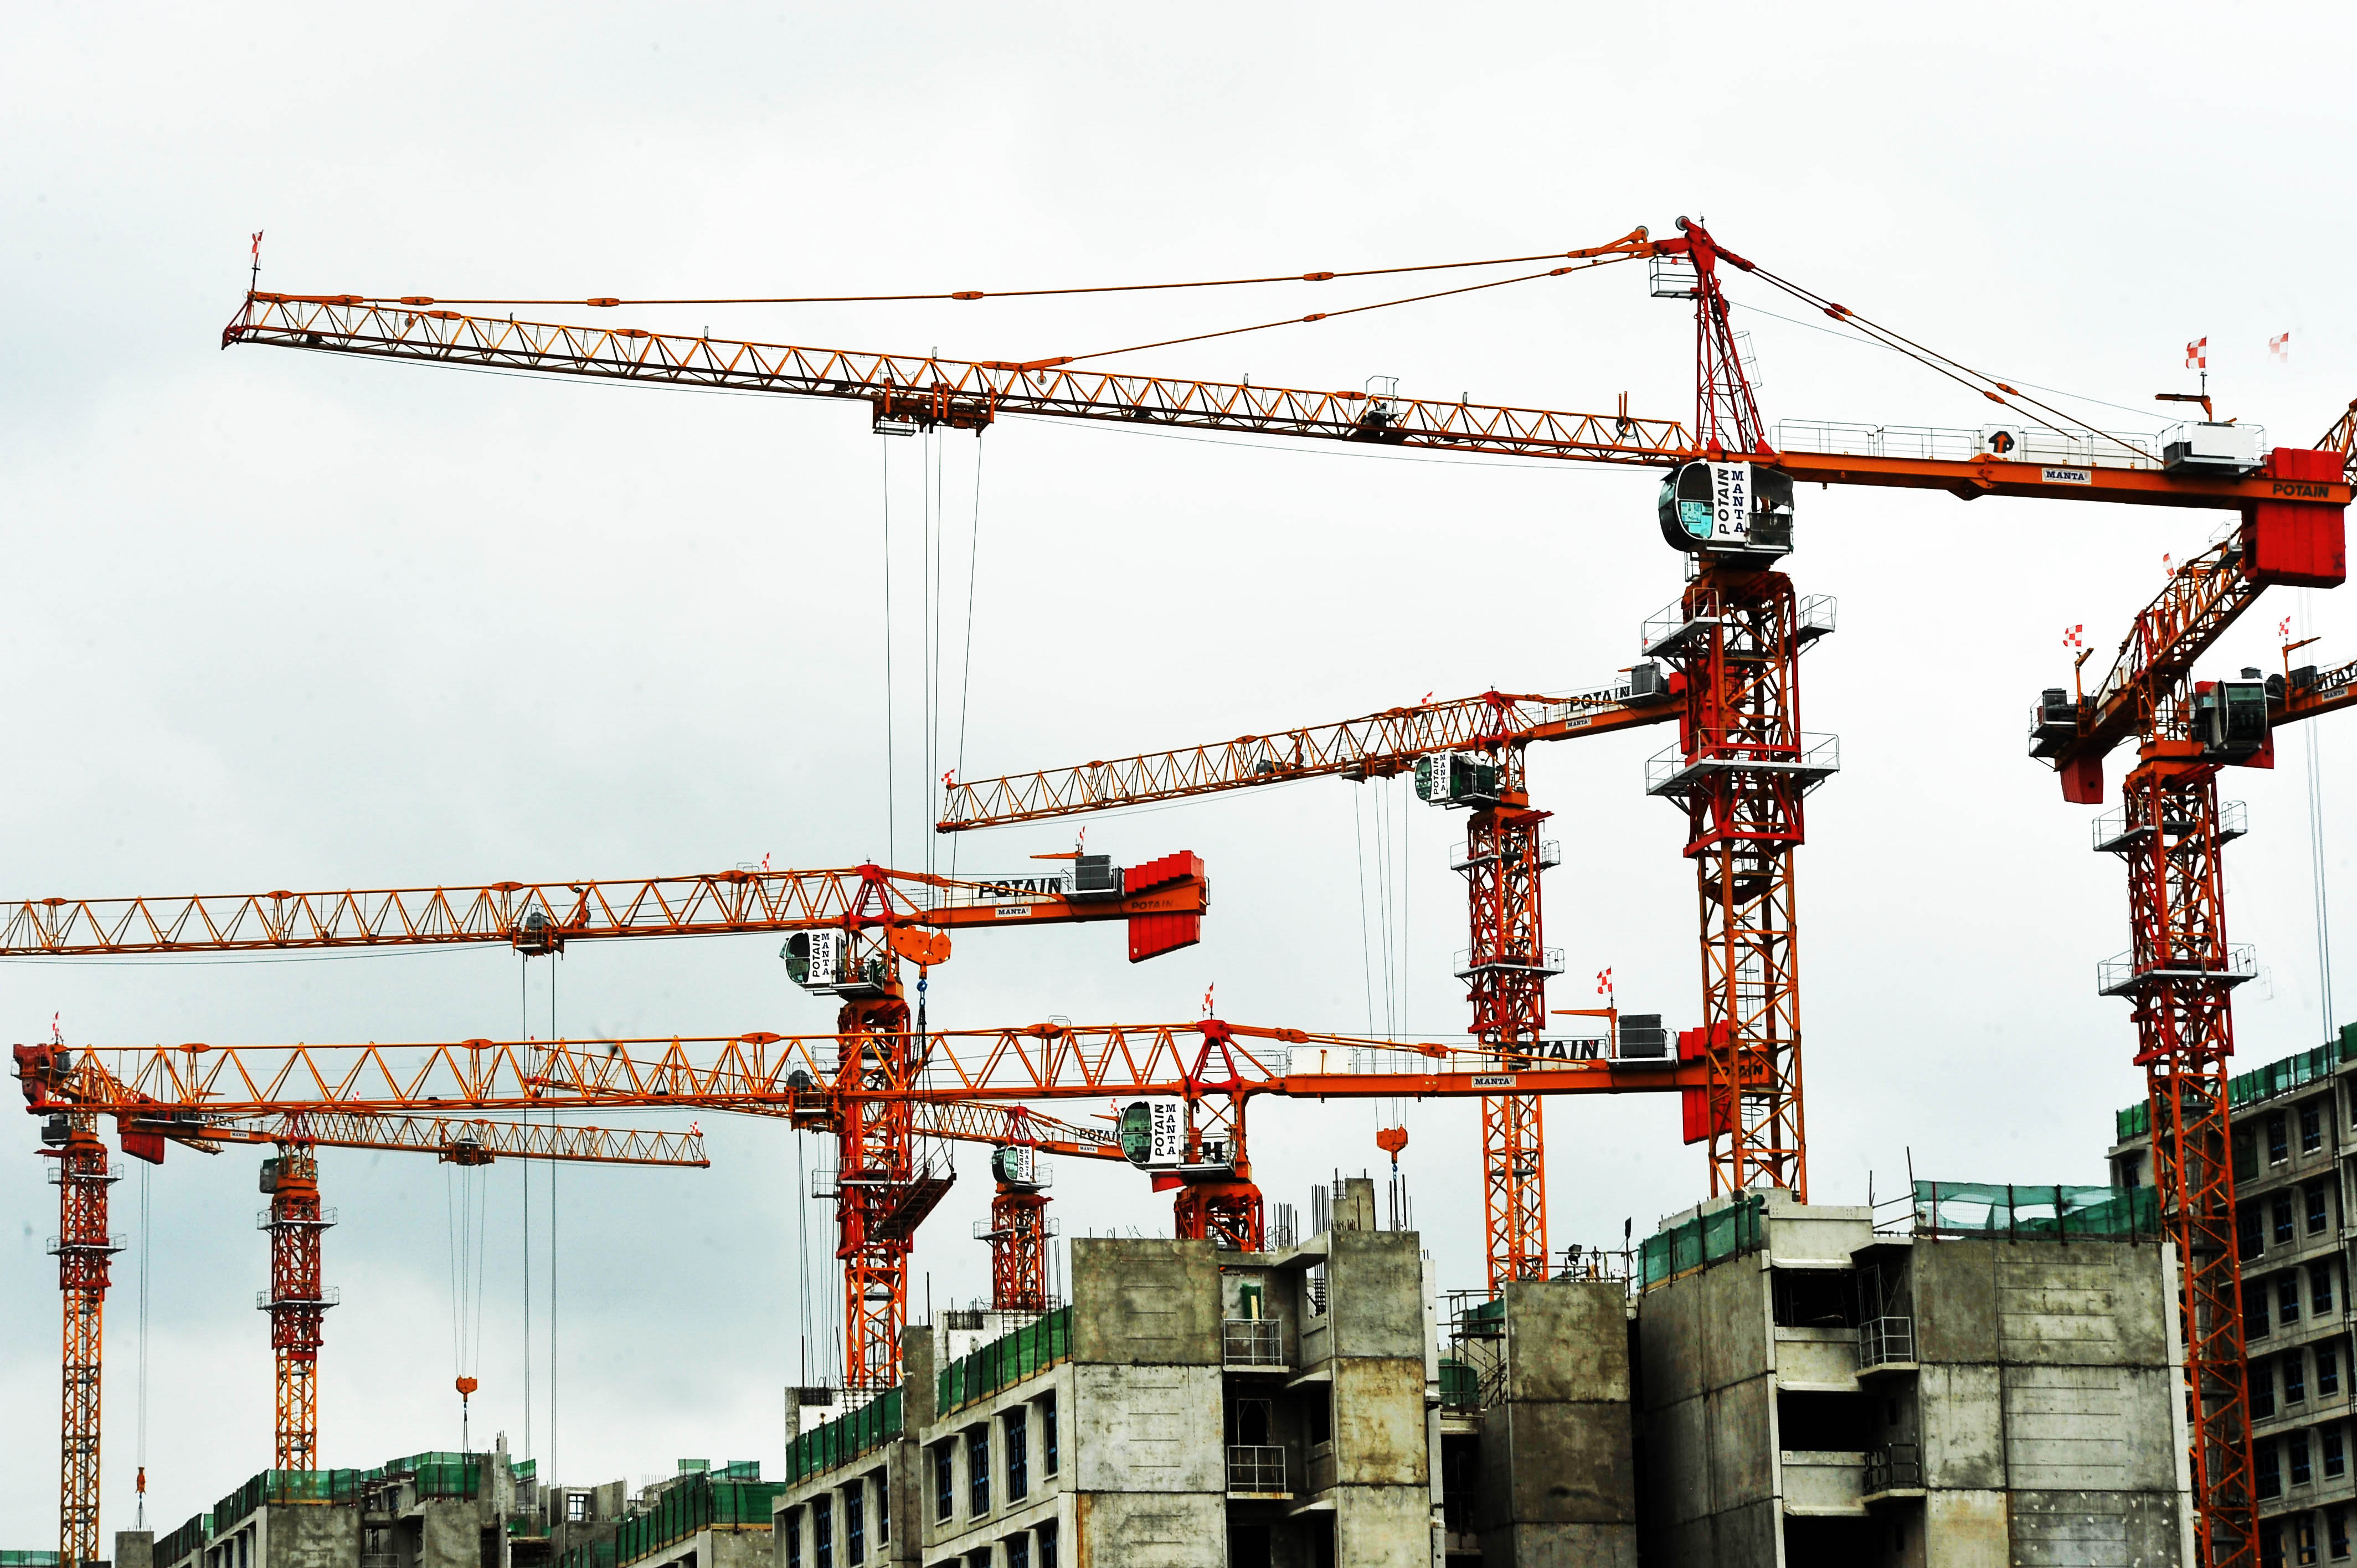 Potain MCT 385 tower cranes dominated on the site of